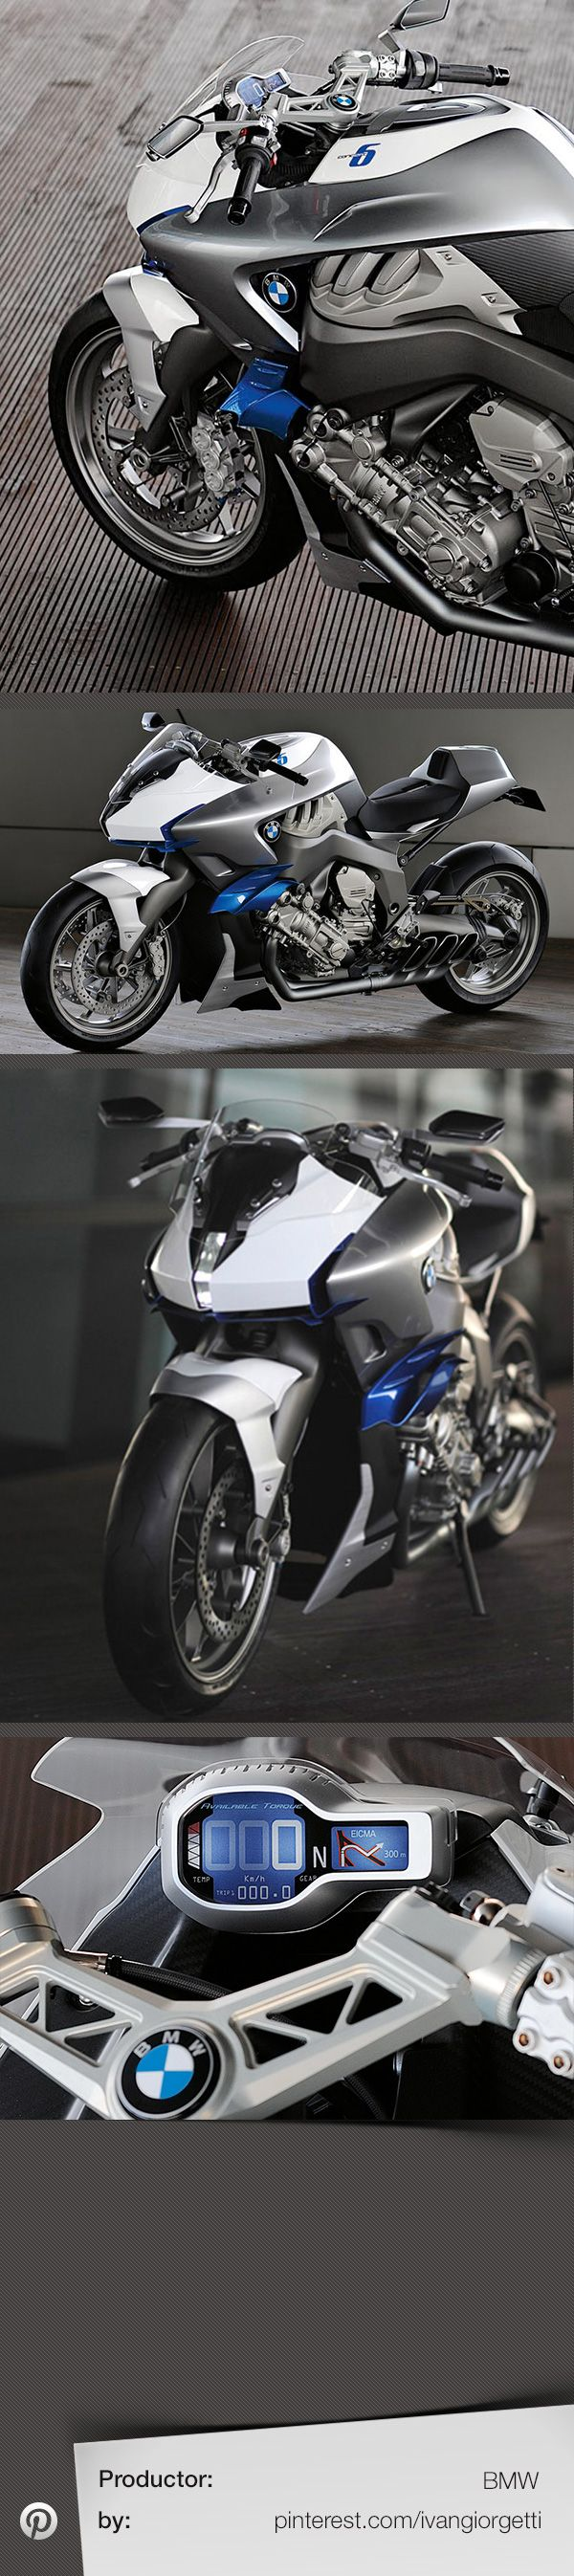 BMW Concept 6 #concept motorcycle #moto #prototype motorcycles